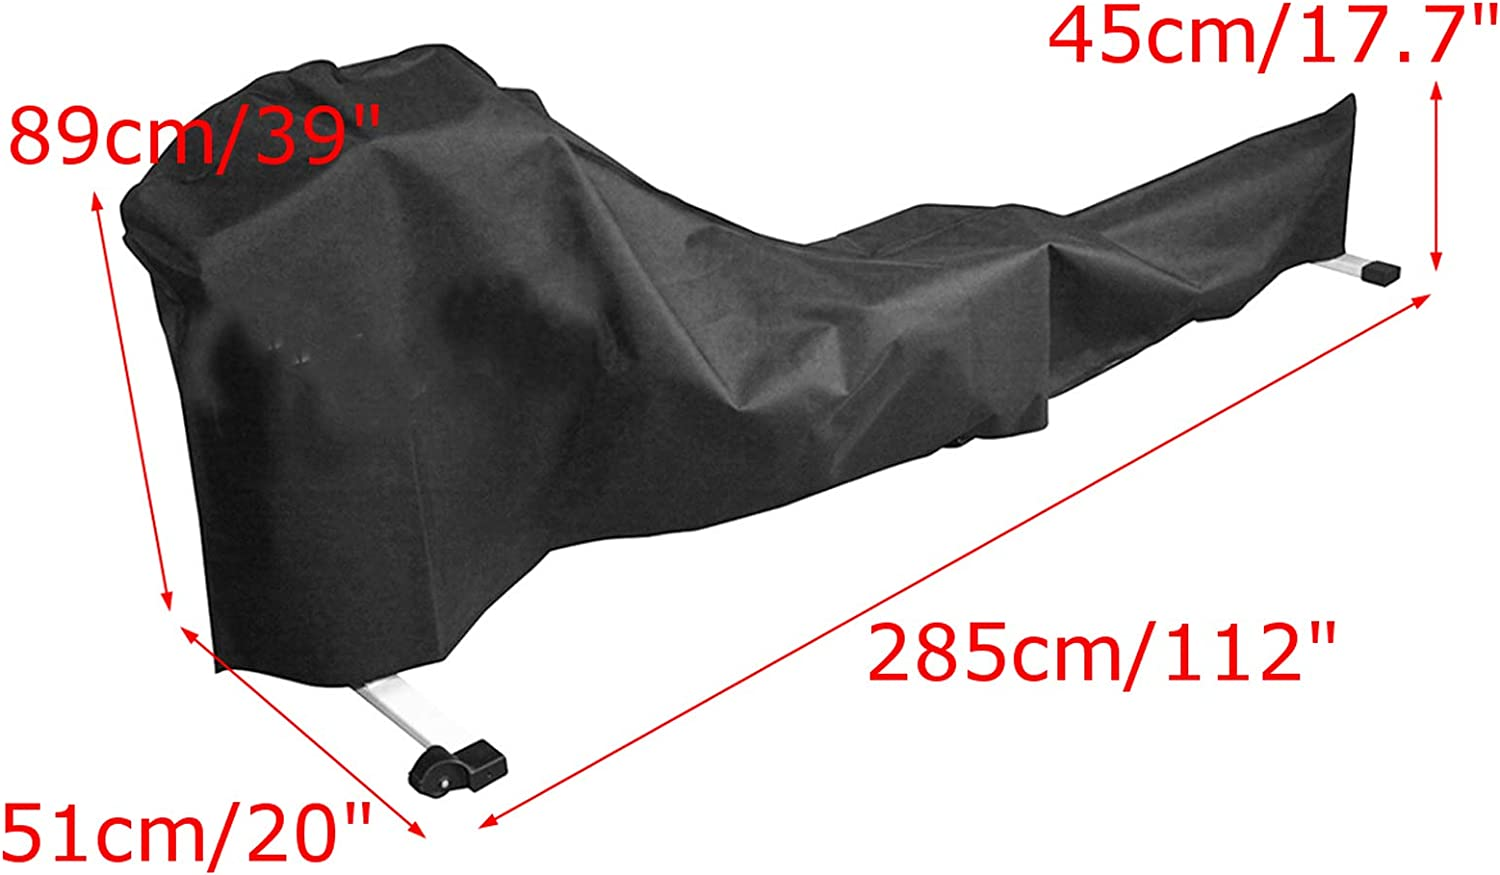 YYBF Rowing Machine Cover Fitness Equipment Covers Outdoor Waterproof Uv Protection Waterproof Dust Cover Fitness Fabric Ideal For Indoor